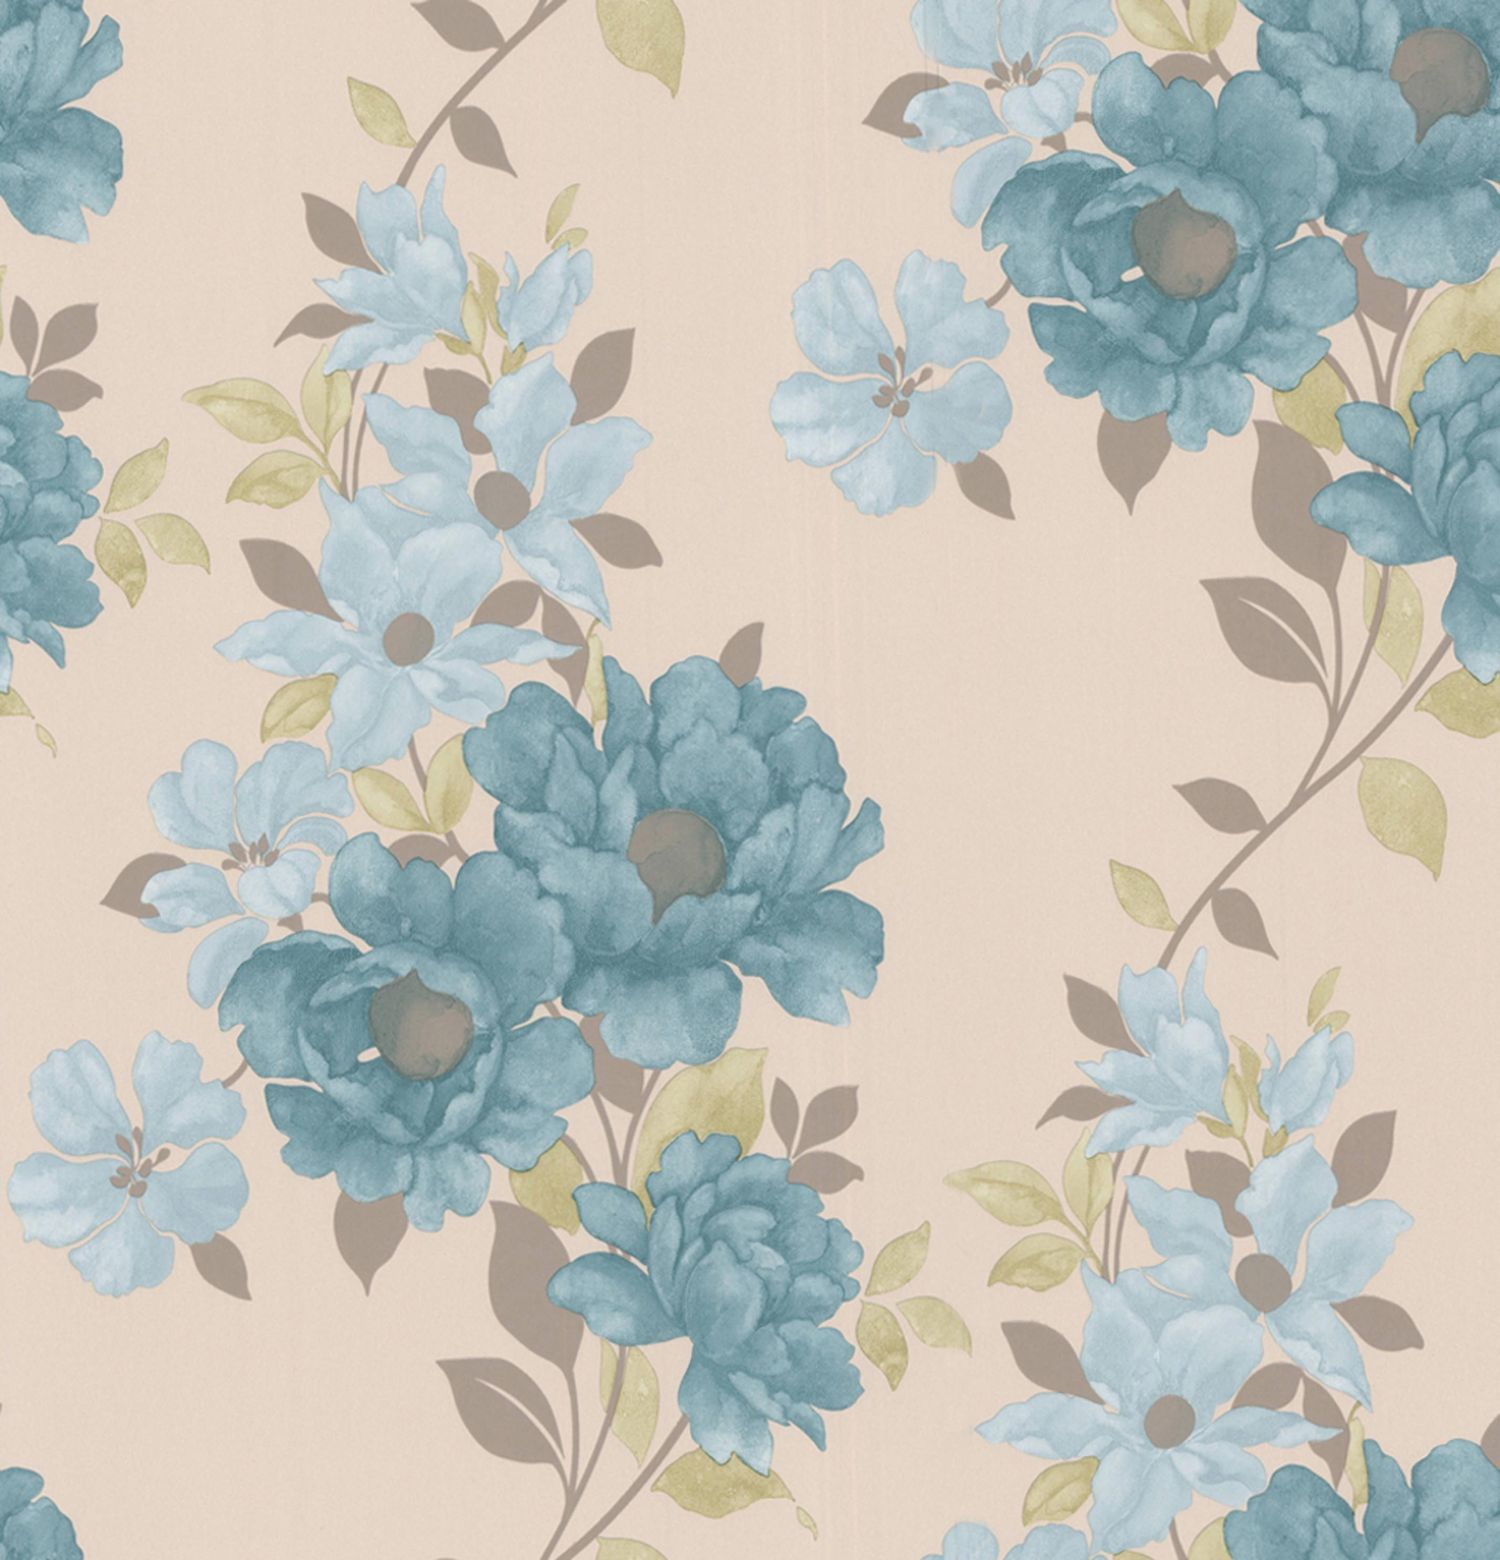 Light blue teal duchessa wallpaper